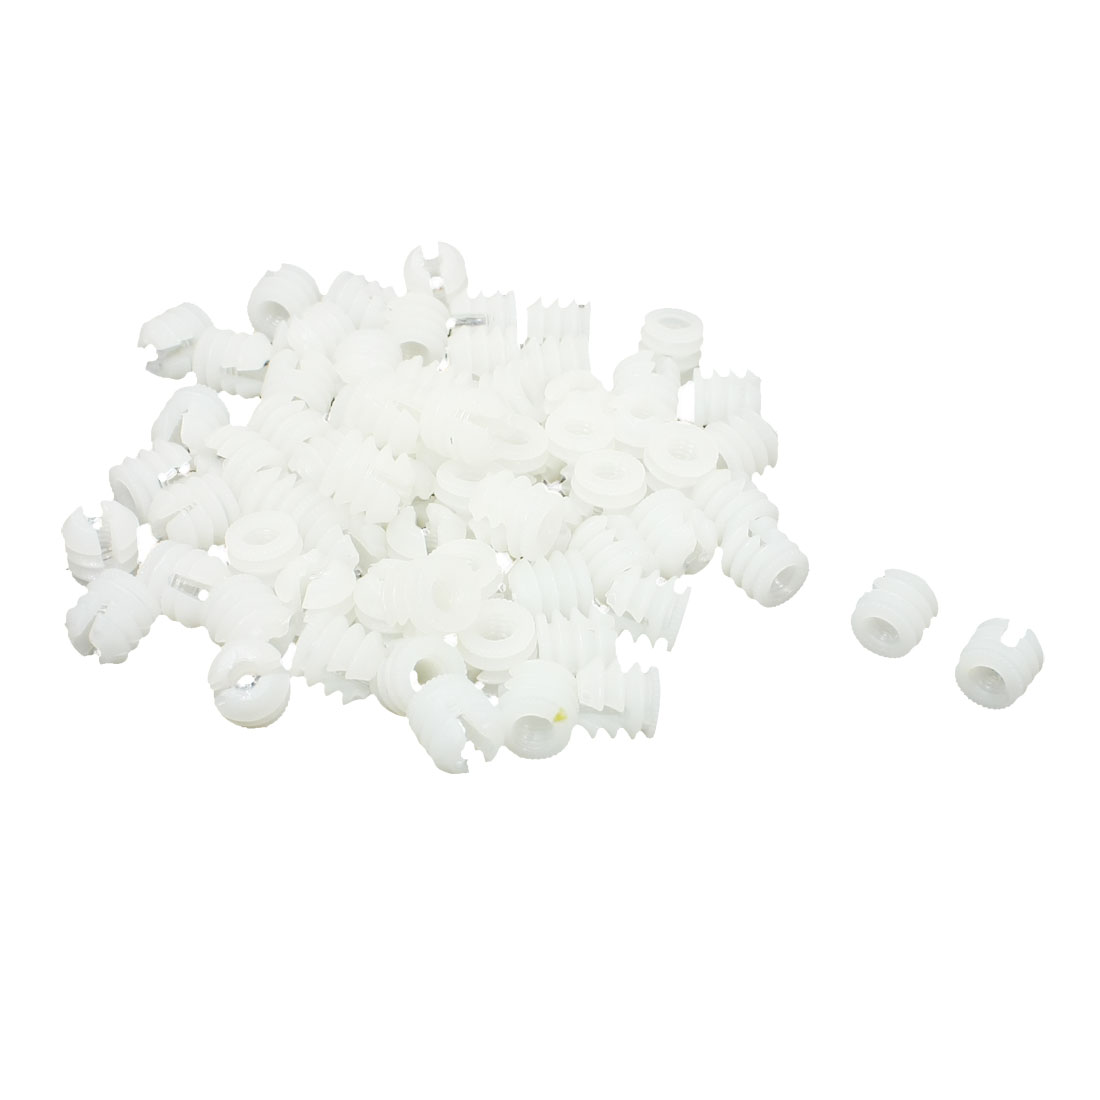 70 Pcs Furniture Connector Fittings White Hard Plastic Pre-inserted Nut